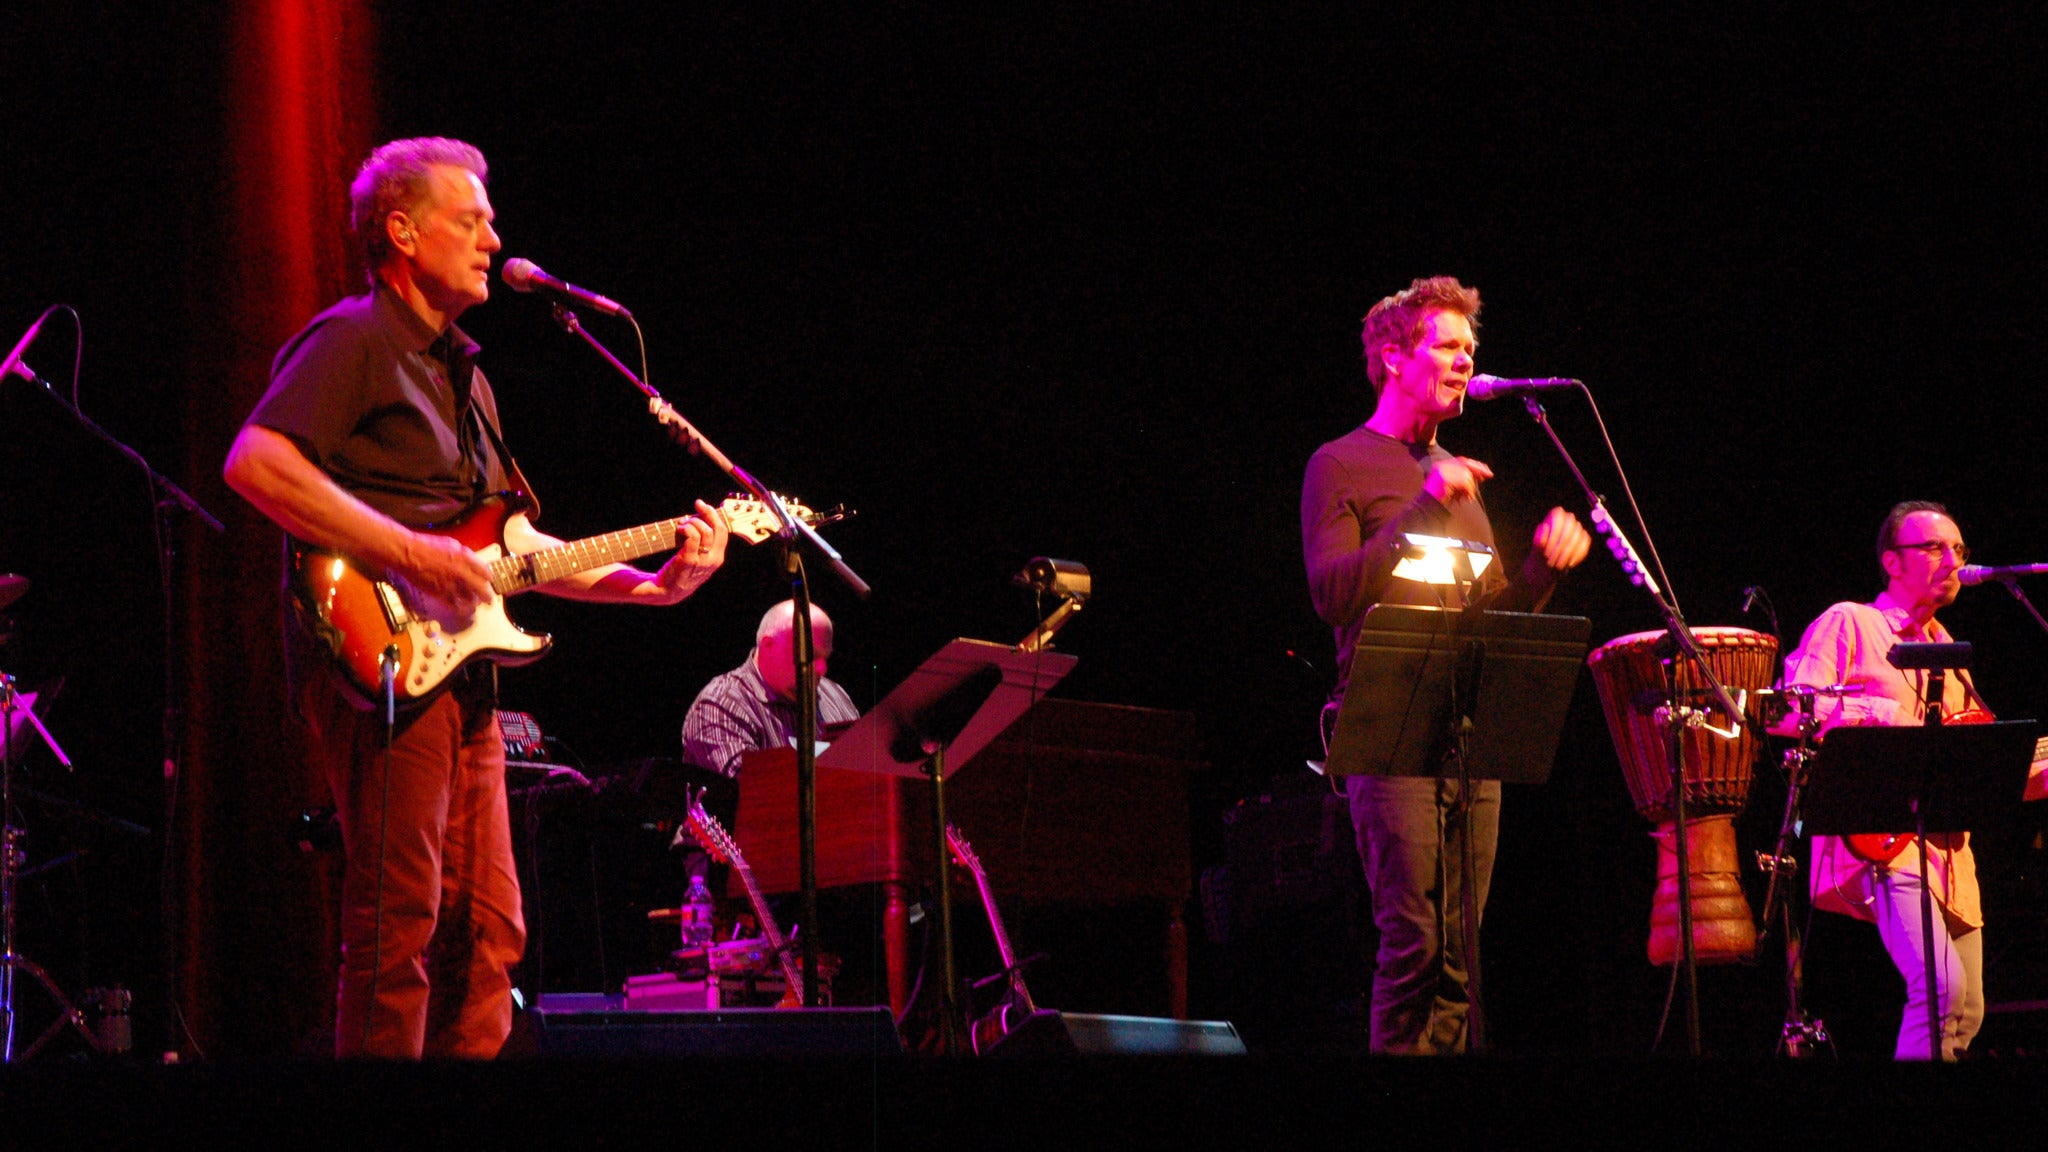 The Bacon Brothers at Birchmere